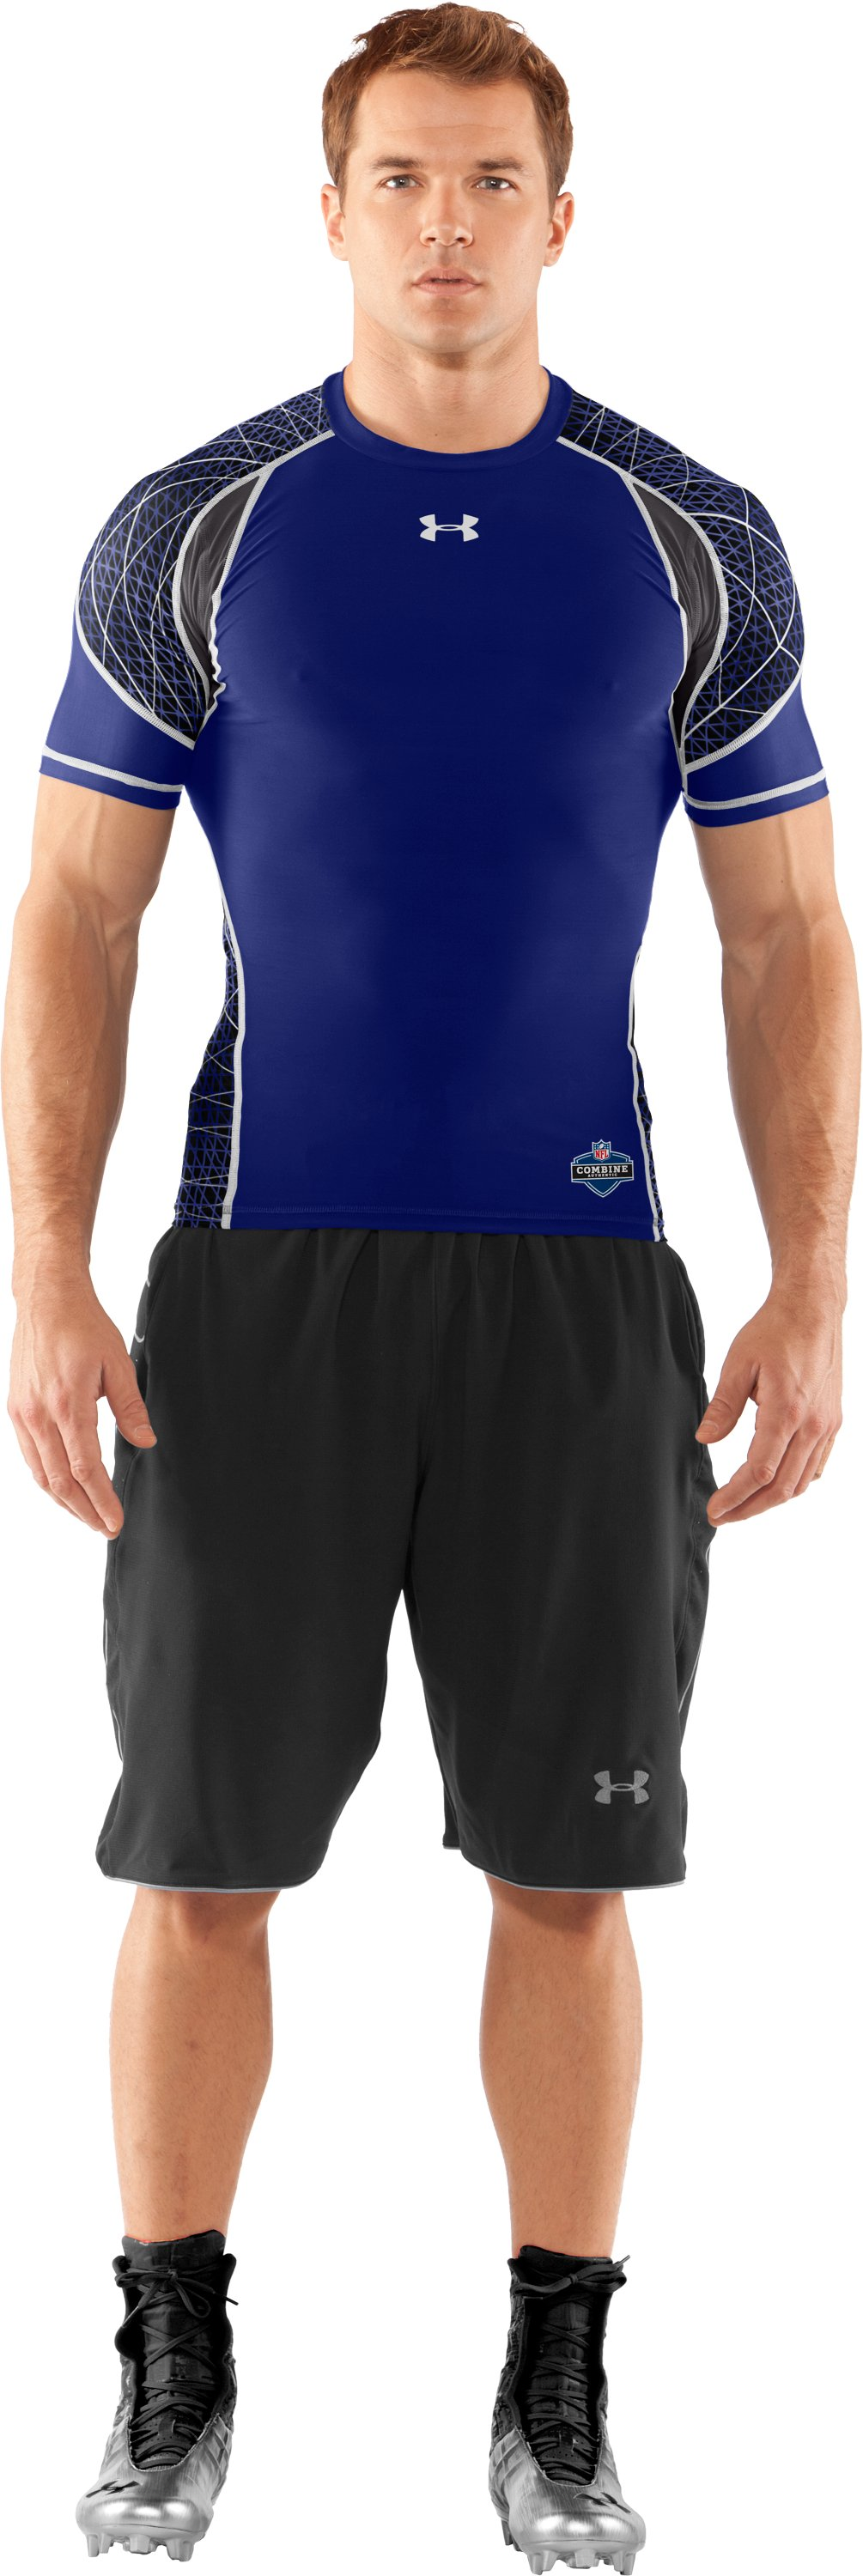 Men's NFL Combine Authentic Warp Speed Short Sleeve, Royal, Front